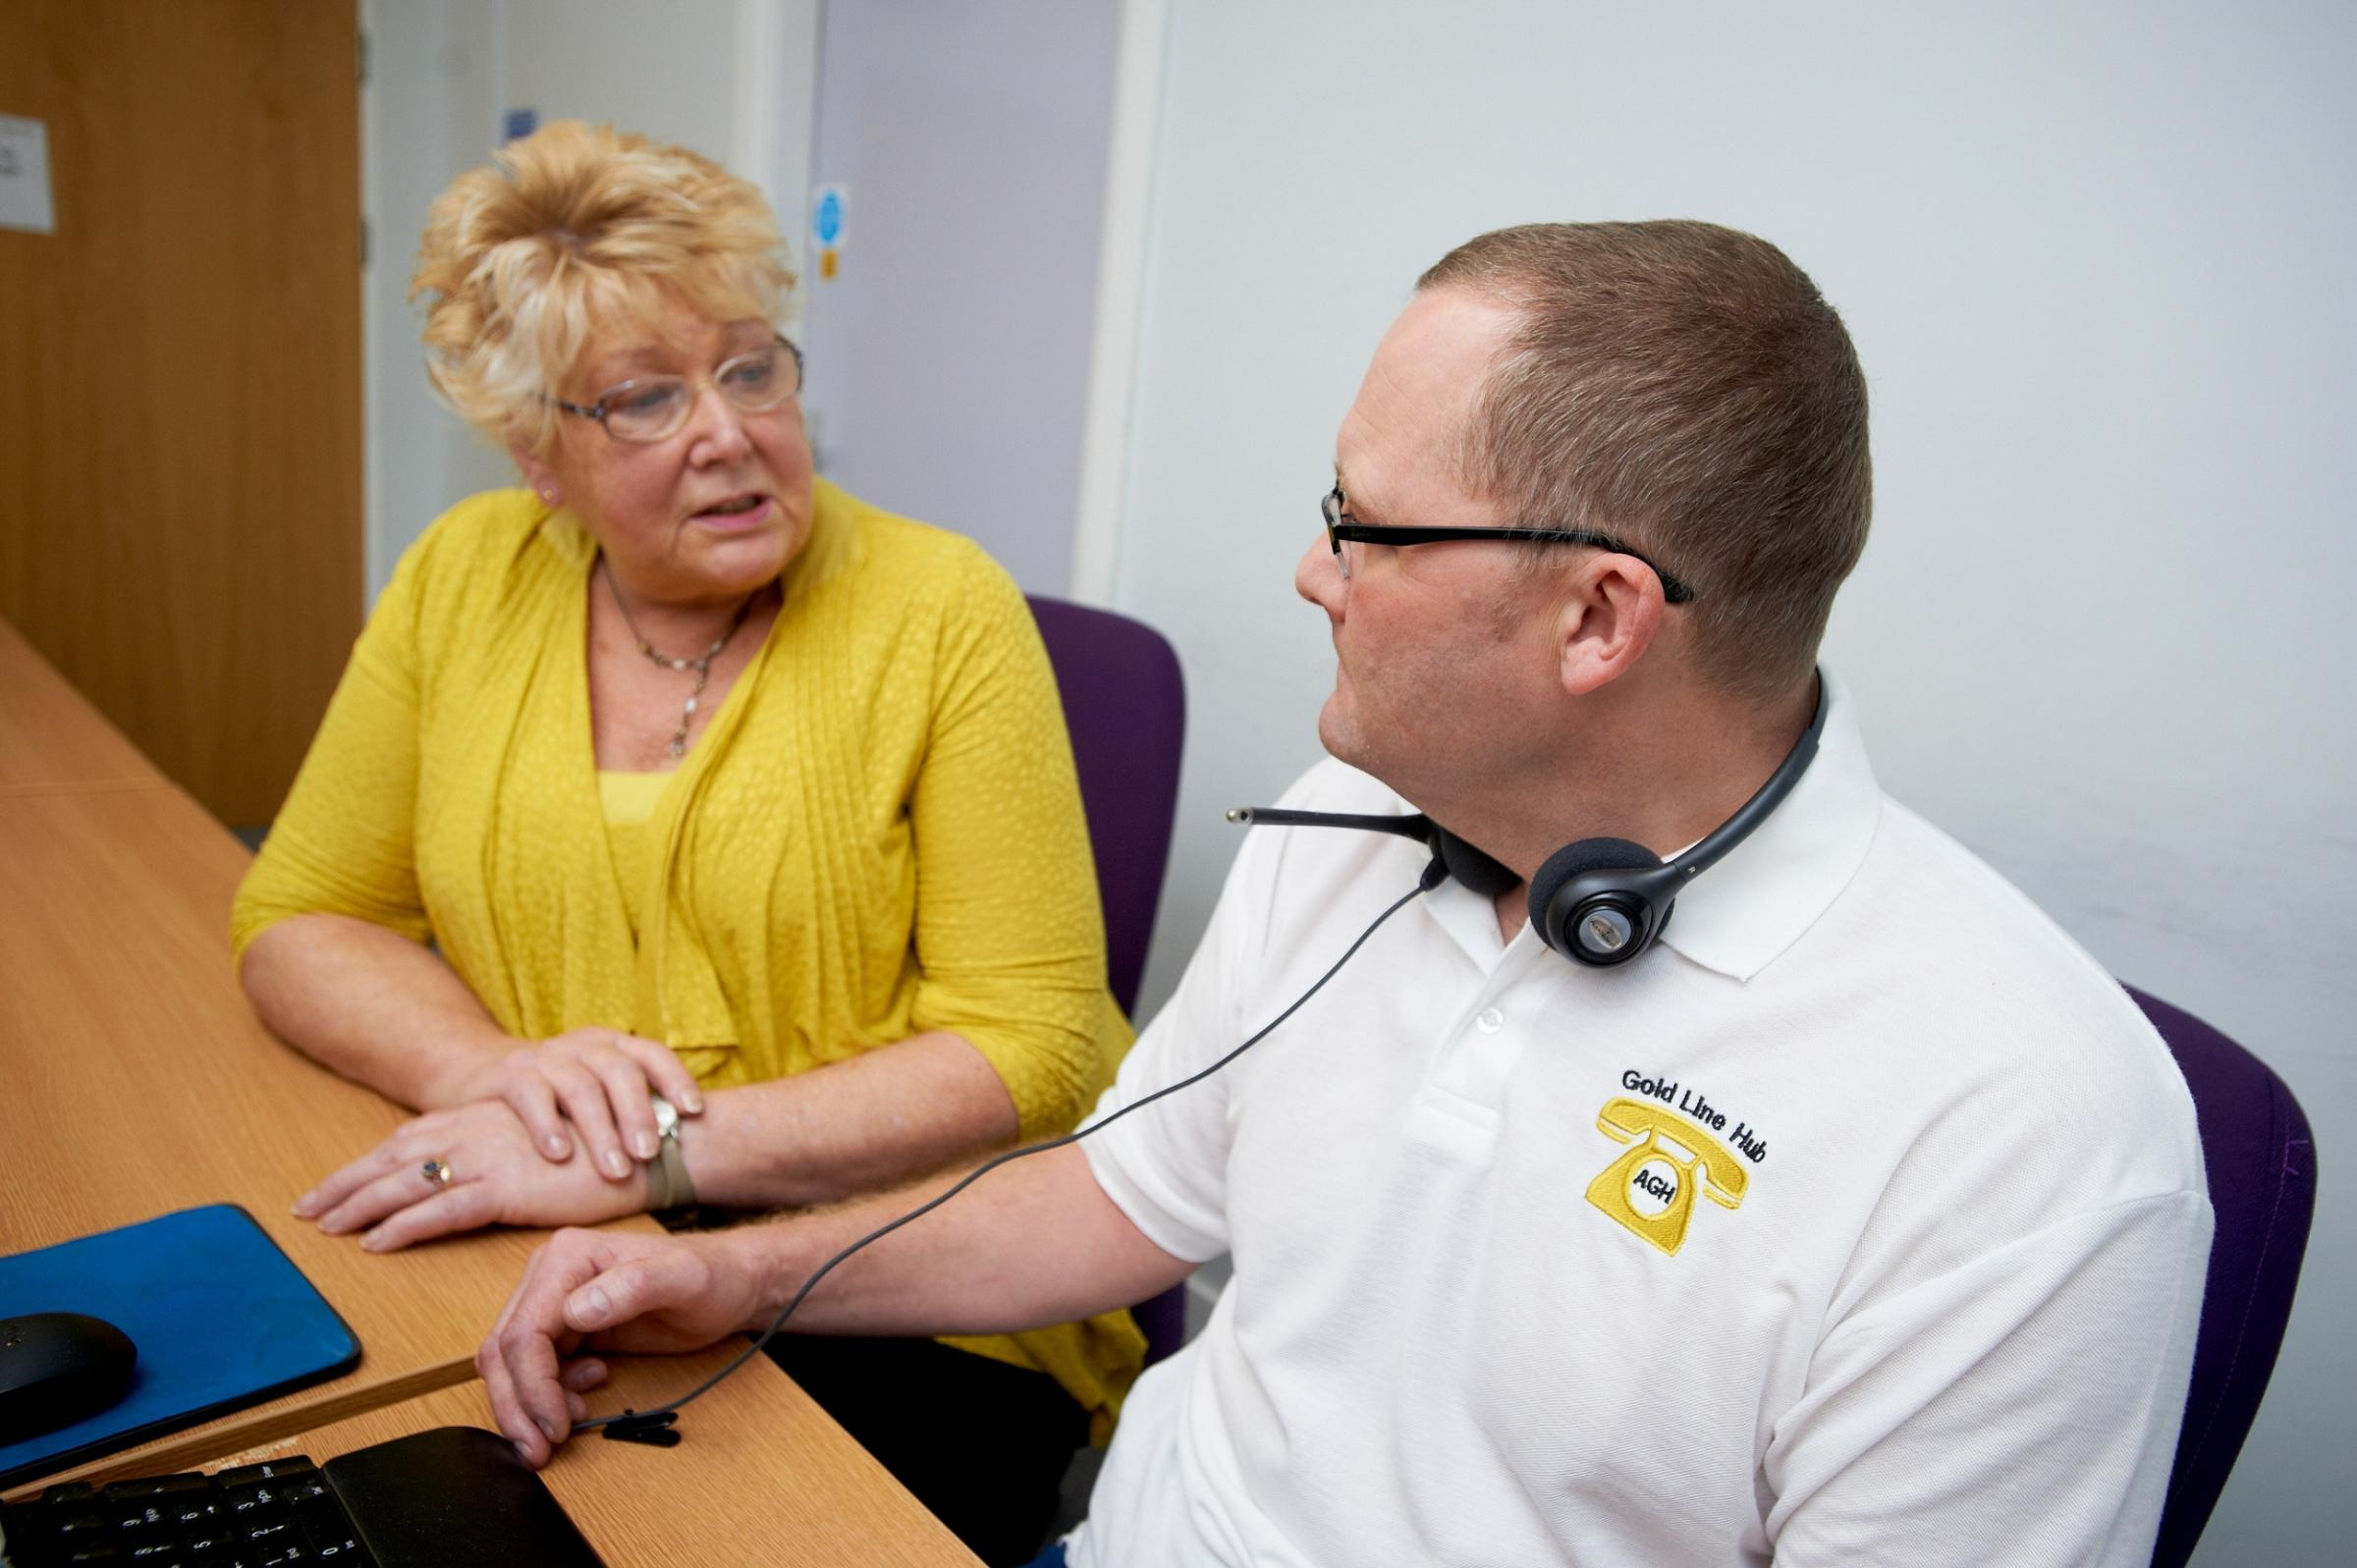 Mrs Jane Walton, a carer on the Gold Line project team, talking to nurse Andrew Farrar in the Gold Line hub